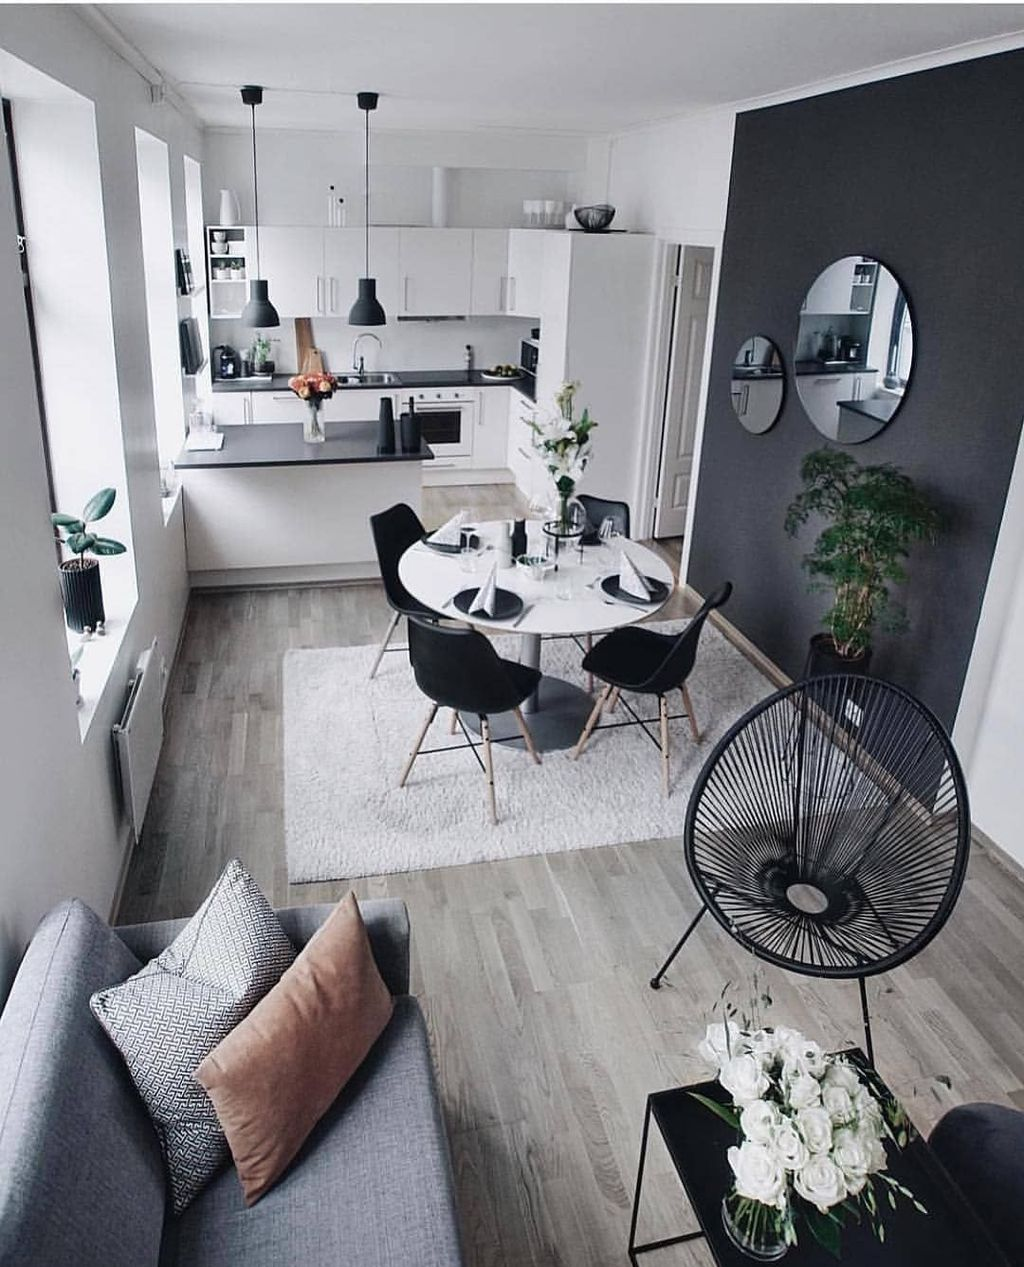 Cheap Minimalist Home Decor Ideas 38 Minimalist Living Room Living Room Design Small Spaces Small Space Living Room